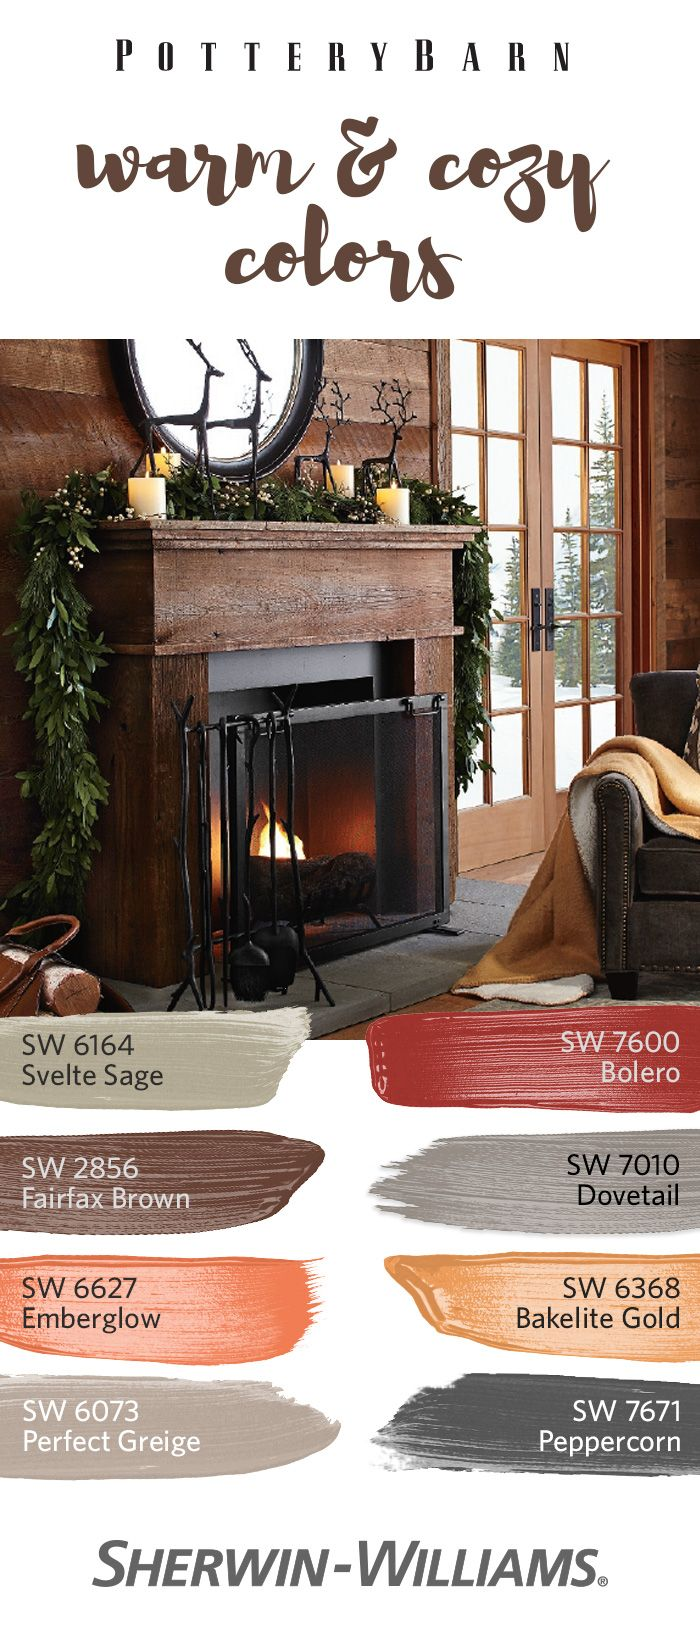 Bring Together Earthy Browns Like Fairfax Brown Warm Neutrals Perfect Greige SW 6073